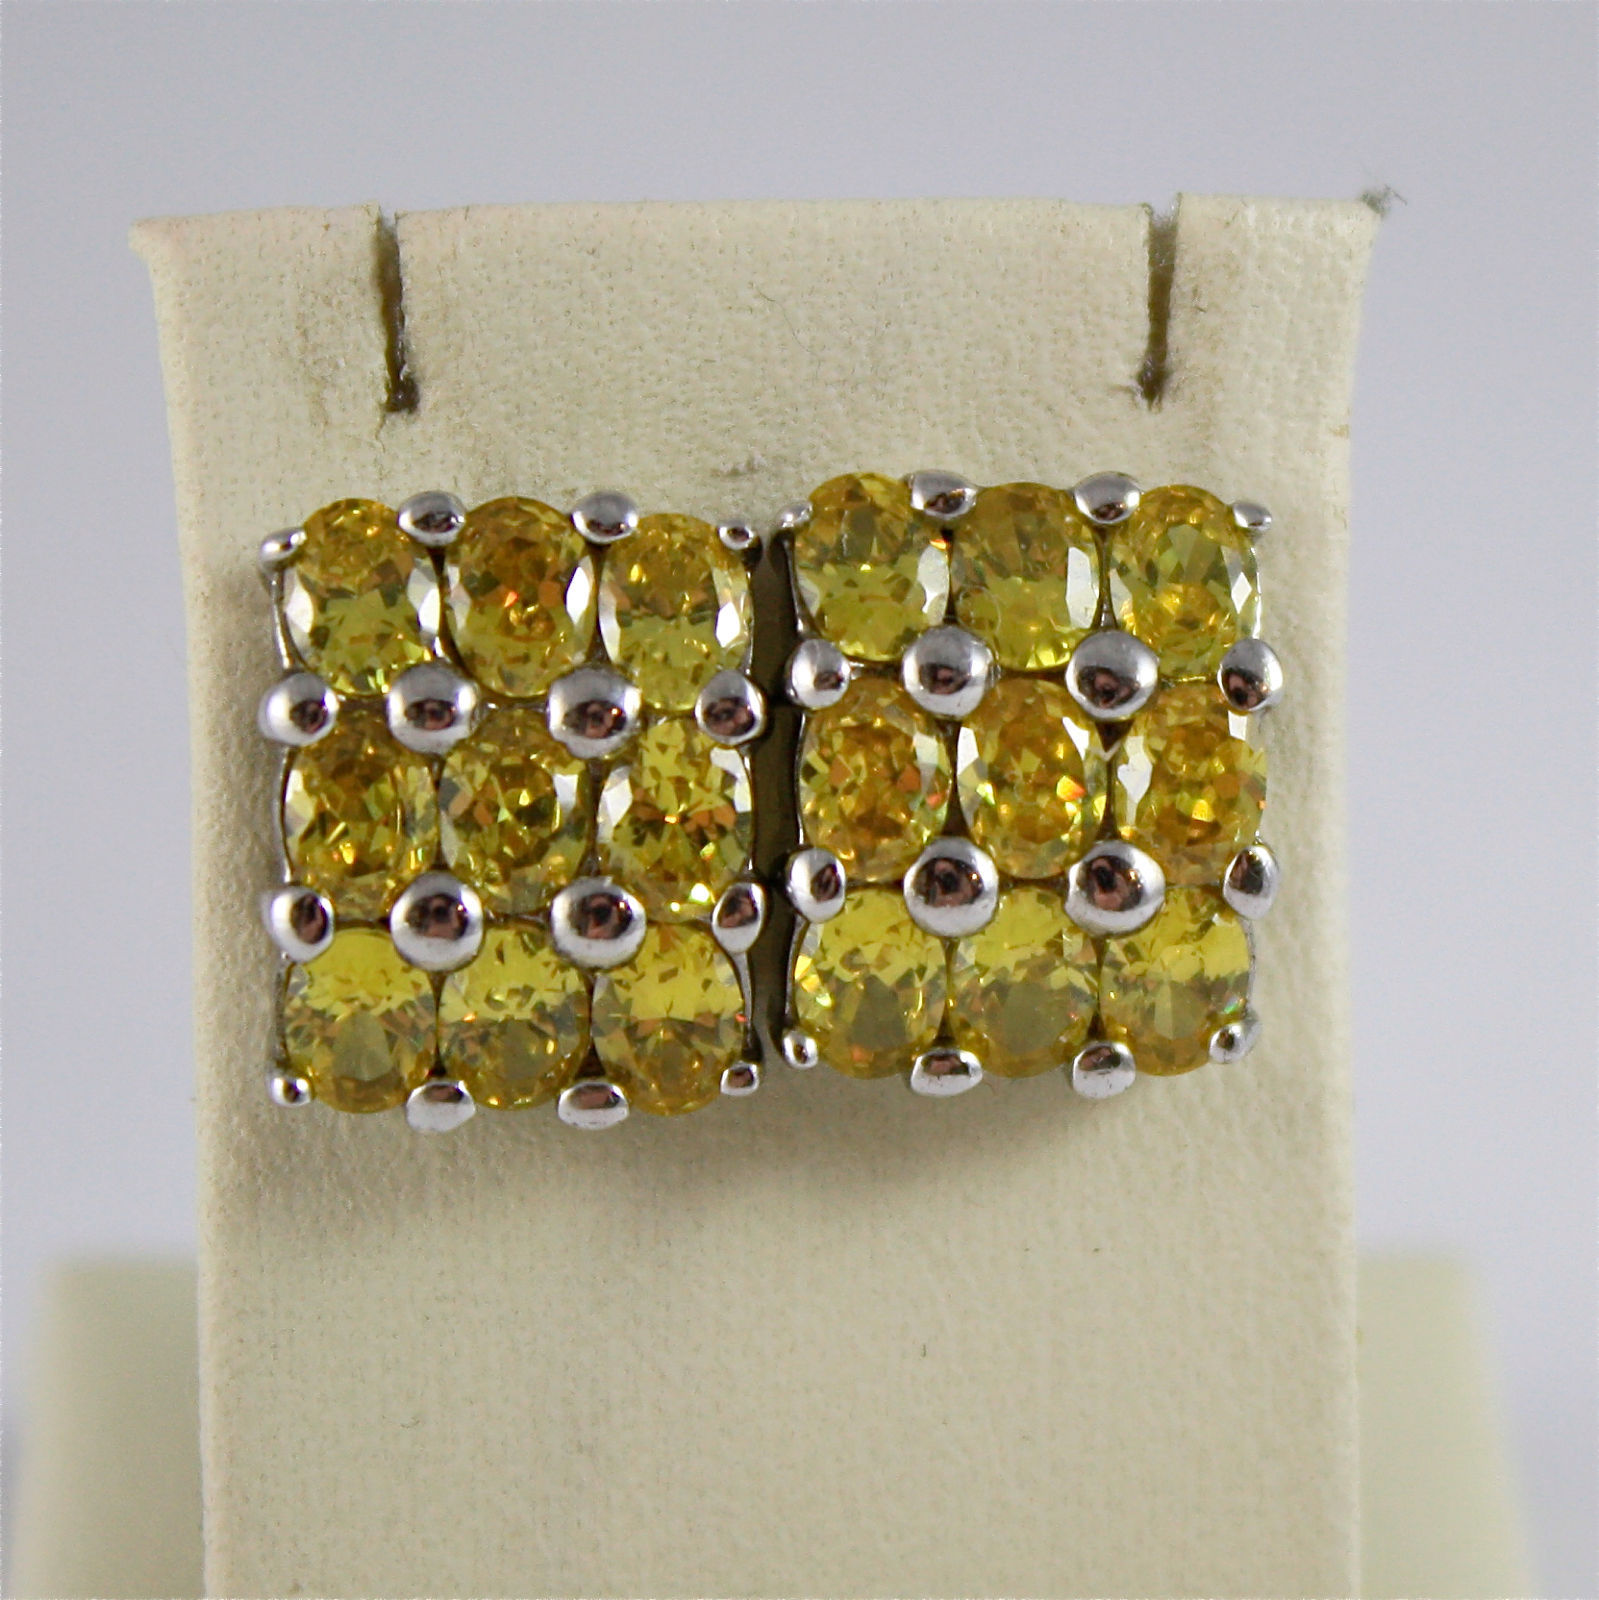 .925 RHODIUM SILVER EARRINGS, YELLOW FACETED CRISTAL PAVE', VINTAGE STYLE.